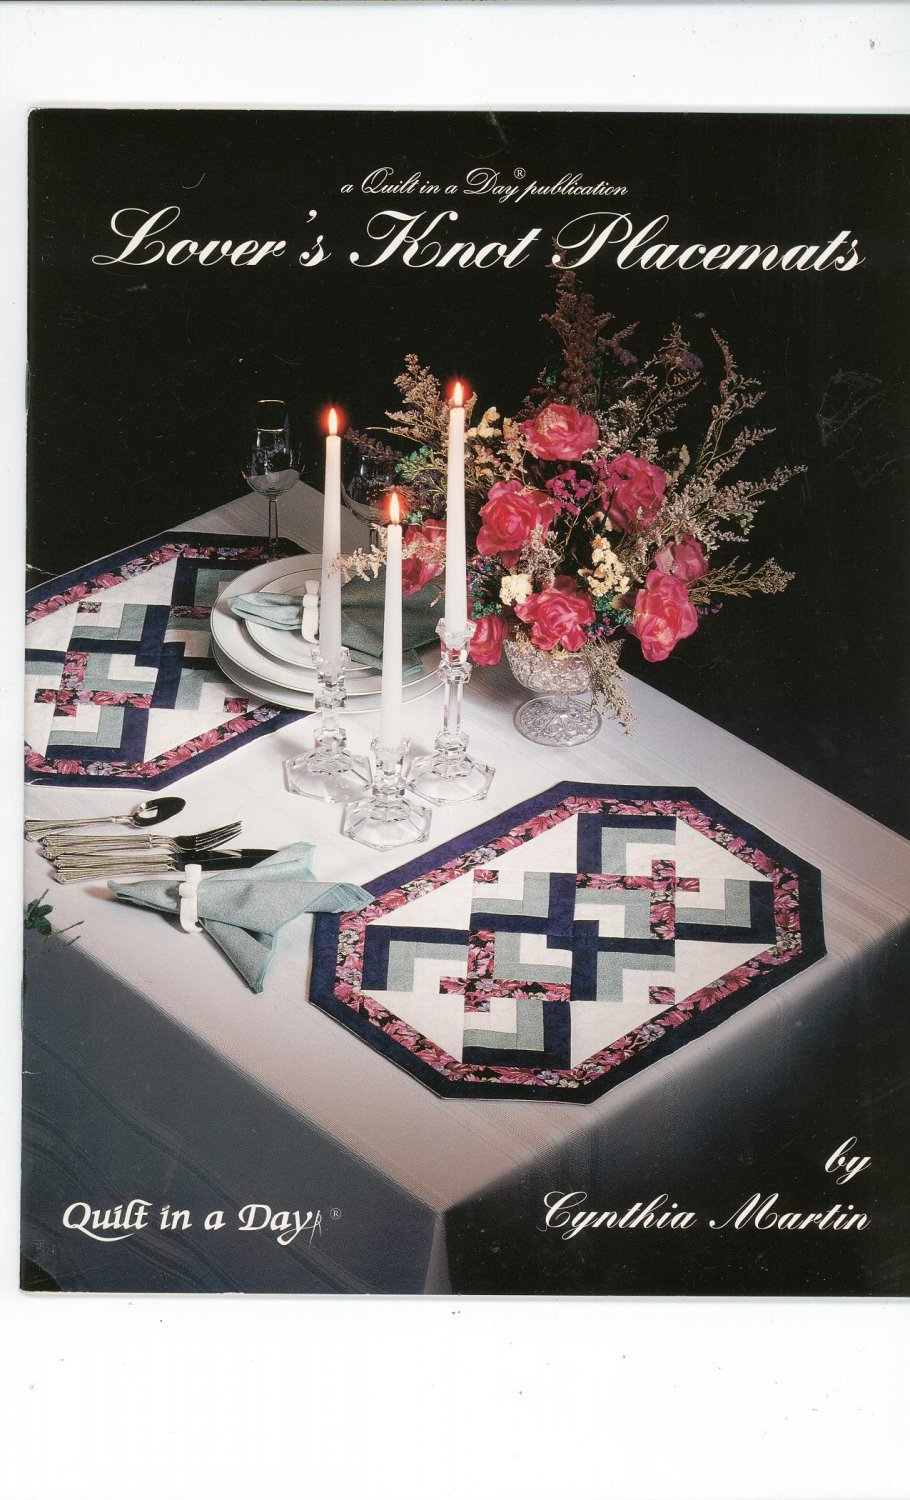 Lover's Knot Placemats By Cynthia Martin 0922705453 Quilt In A Day